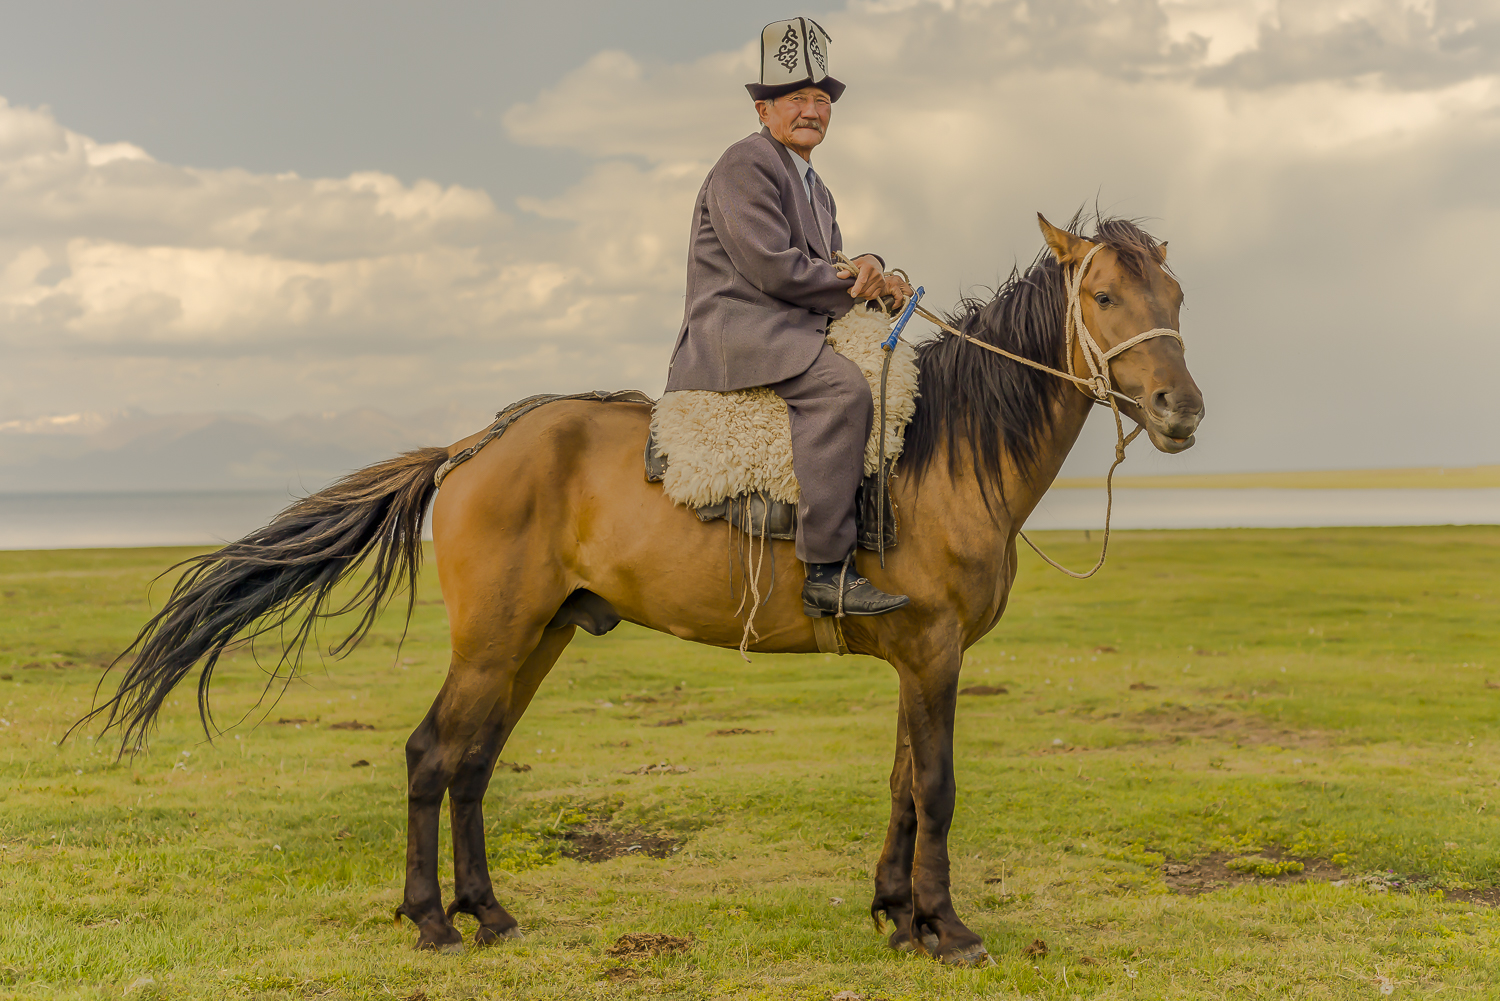 jo-kearney-photography-video-kyrgyzstan-nomads-horse-man-on-horse-traditional-song-kul-horseman.jpg